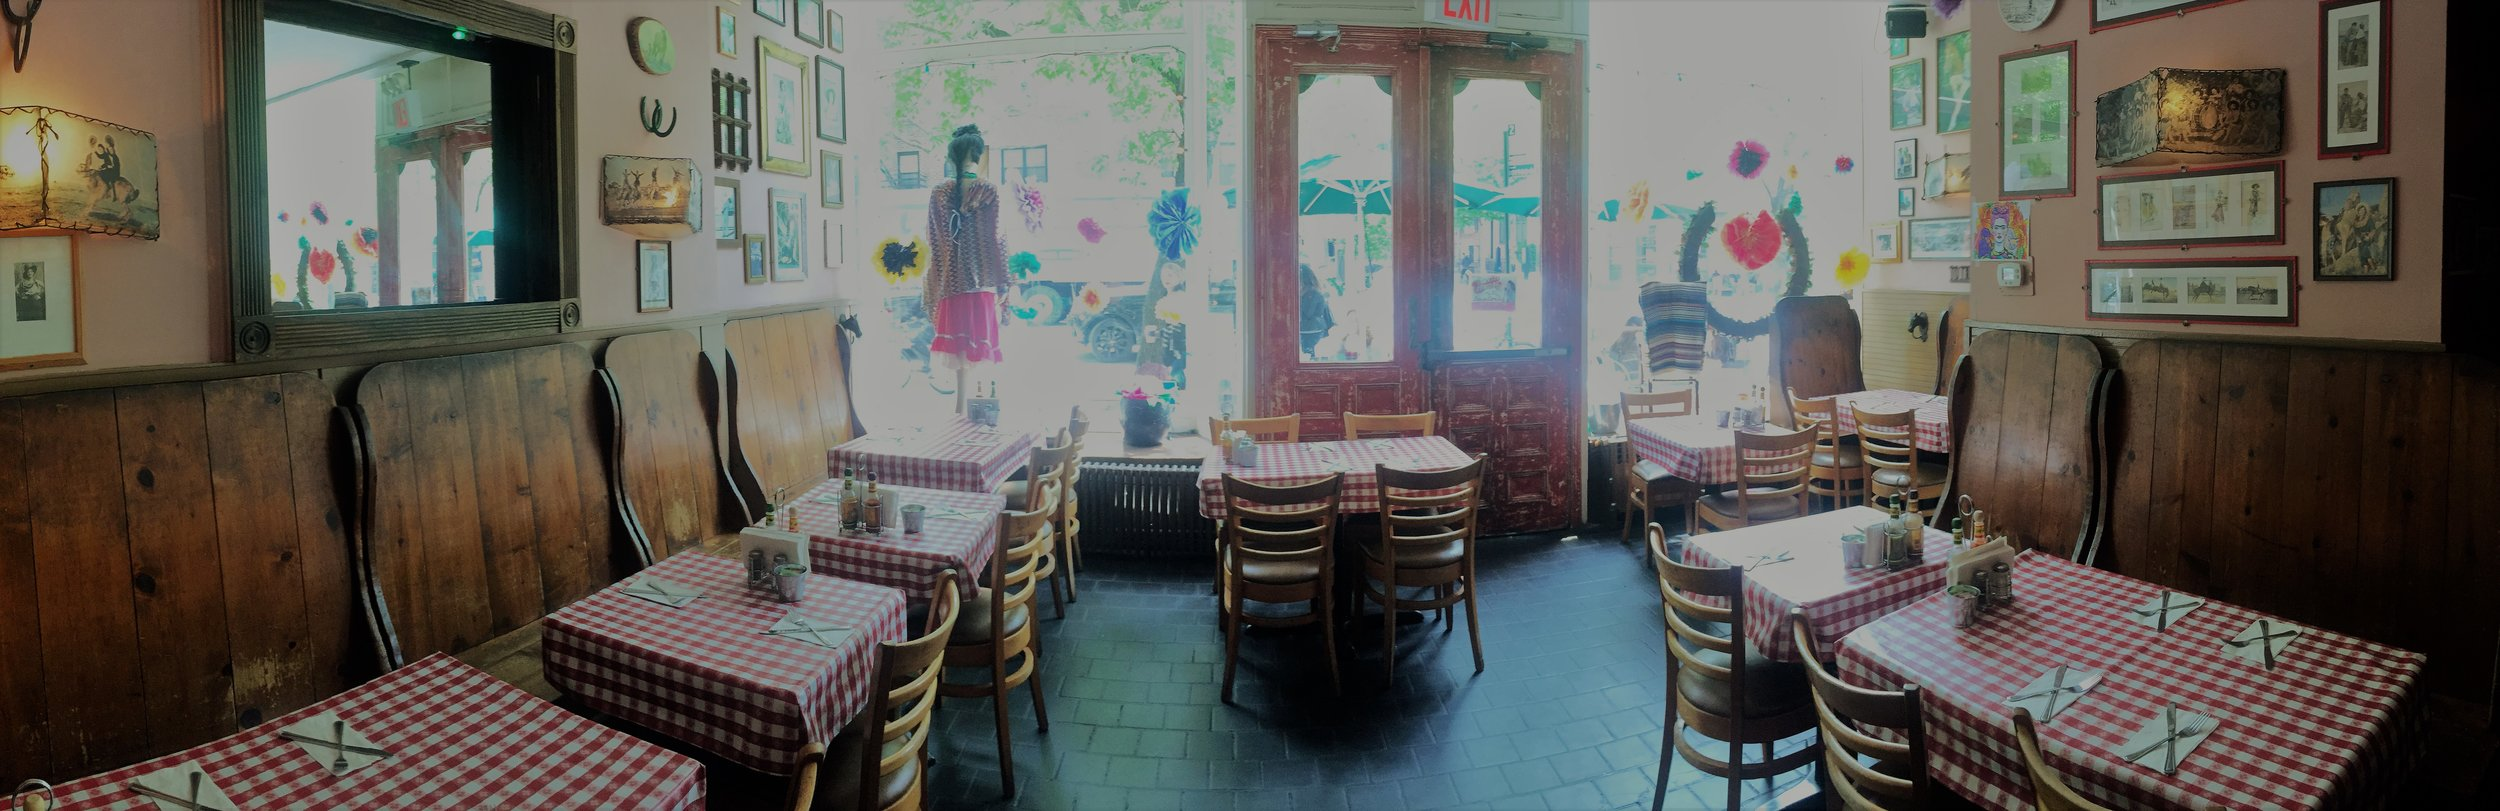 COWGIRL  As a bar and restaurant founded in 1989, Cowgirl has helped shape the NYC community of the West Village by welcoming people of all walks of life with Texas-friendly service, food and killer margaritas. The owners and staff, are proud to be a part of uniting true wild-west spirit with the independent, creative energy of NYC.